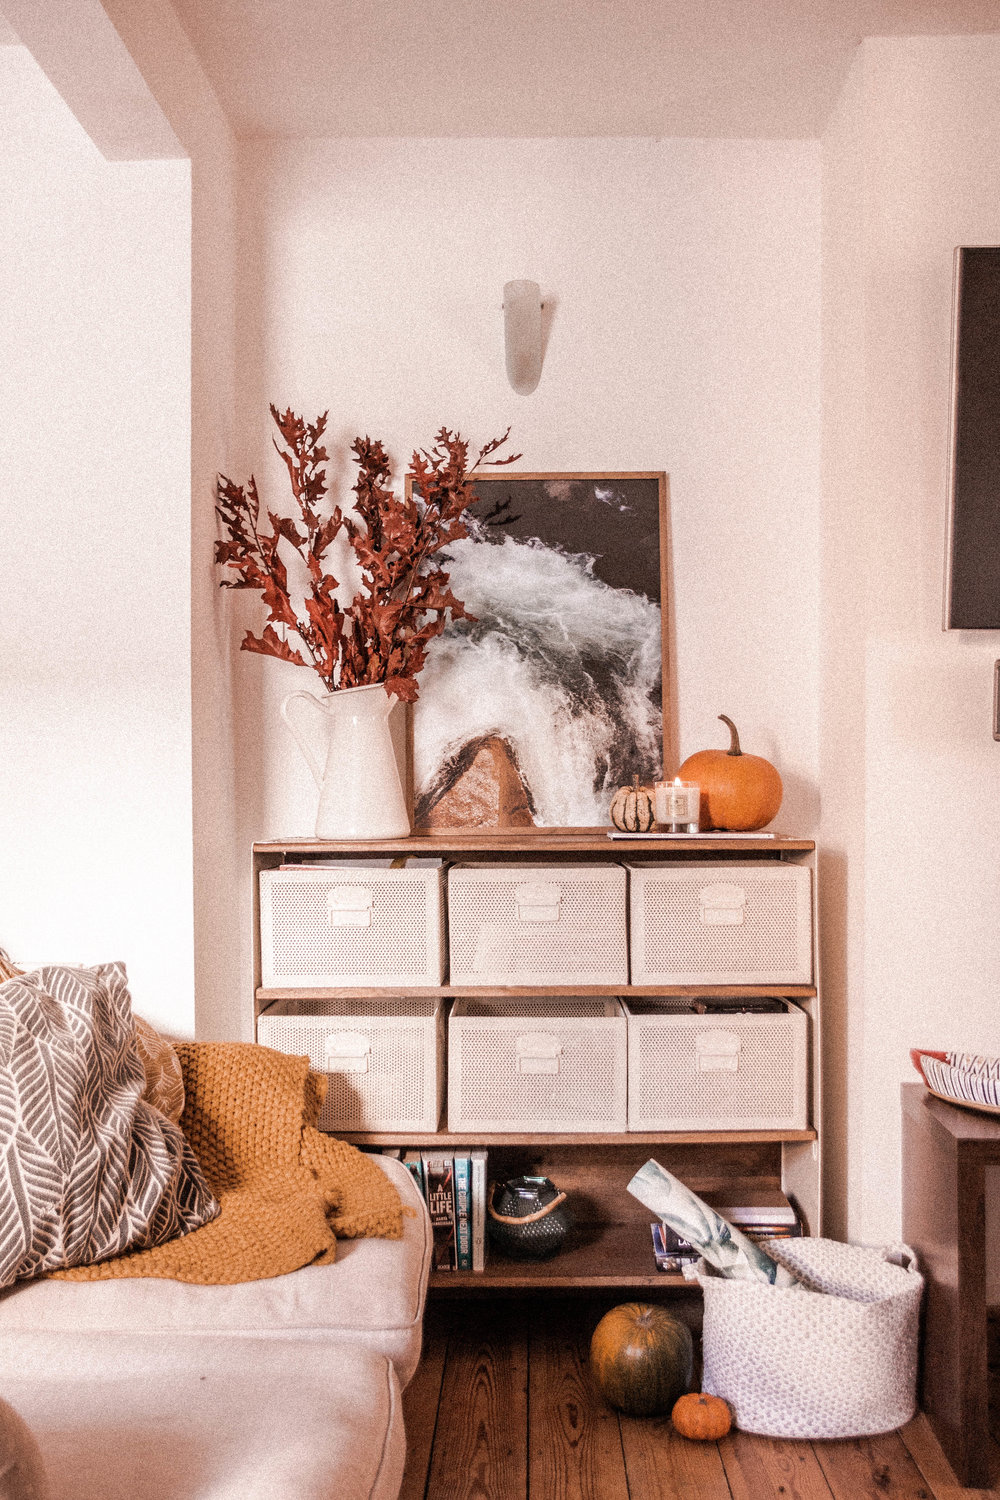 Autumn Home Changes Rush and Teal-15.jpg